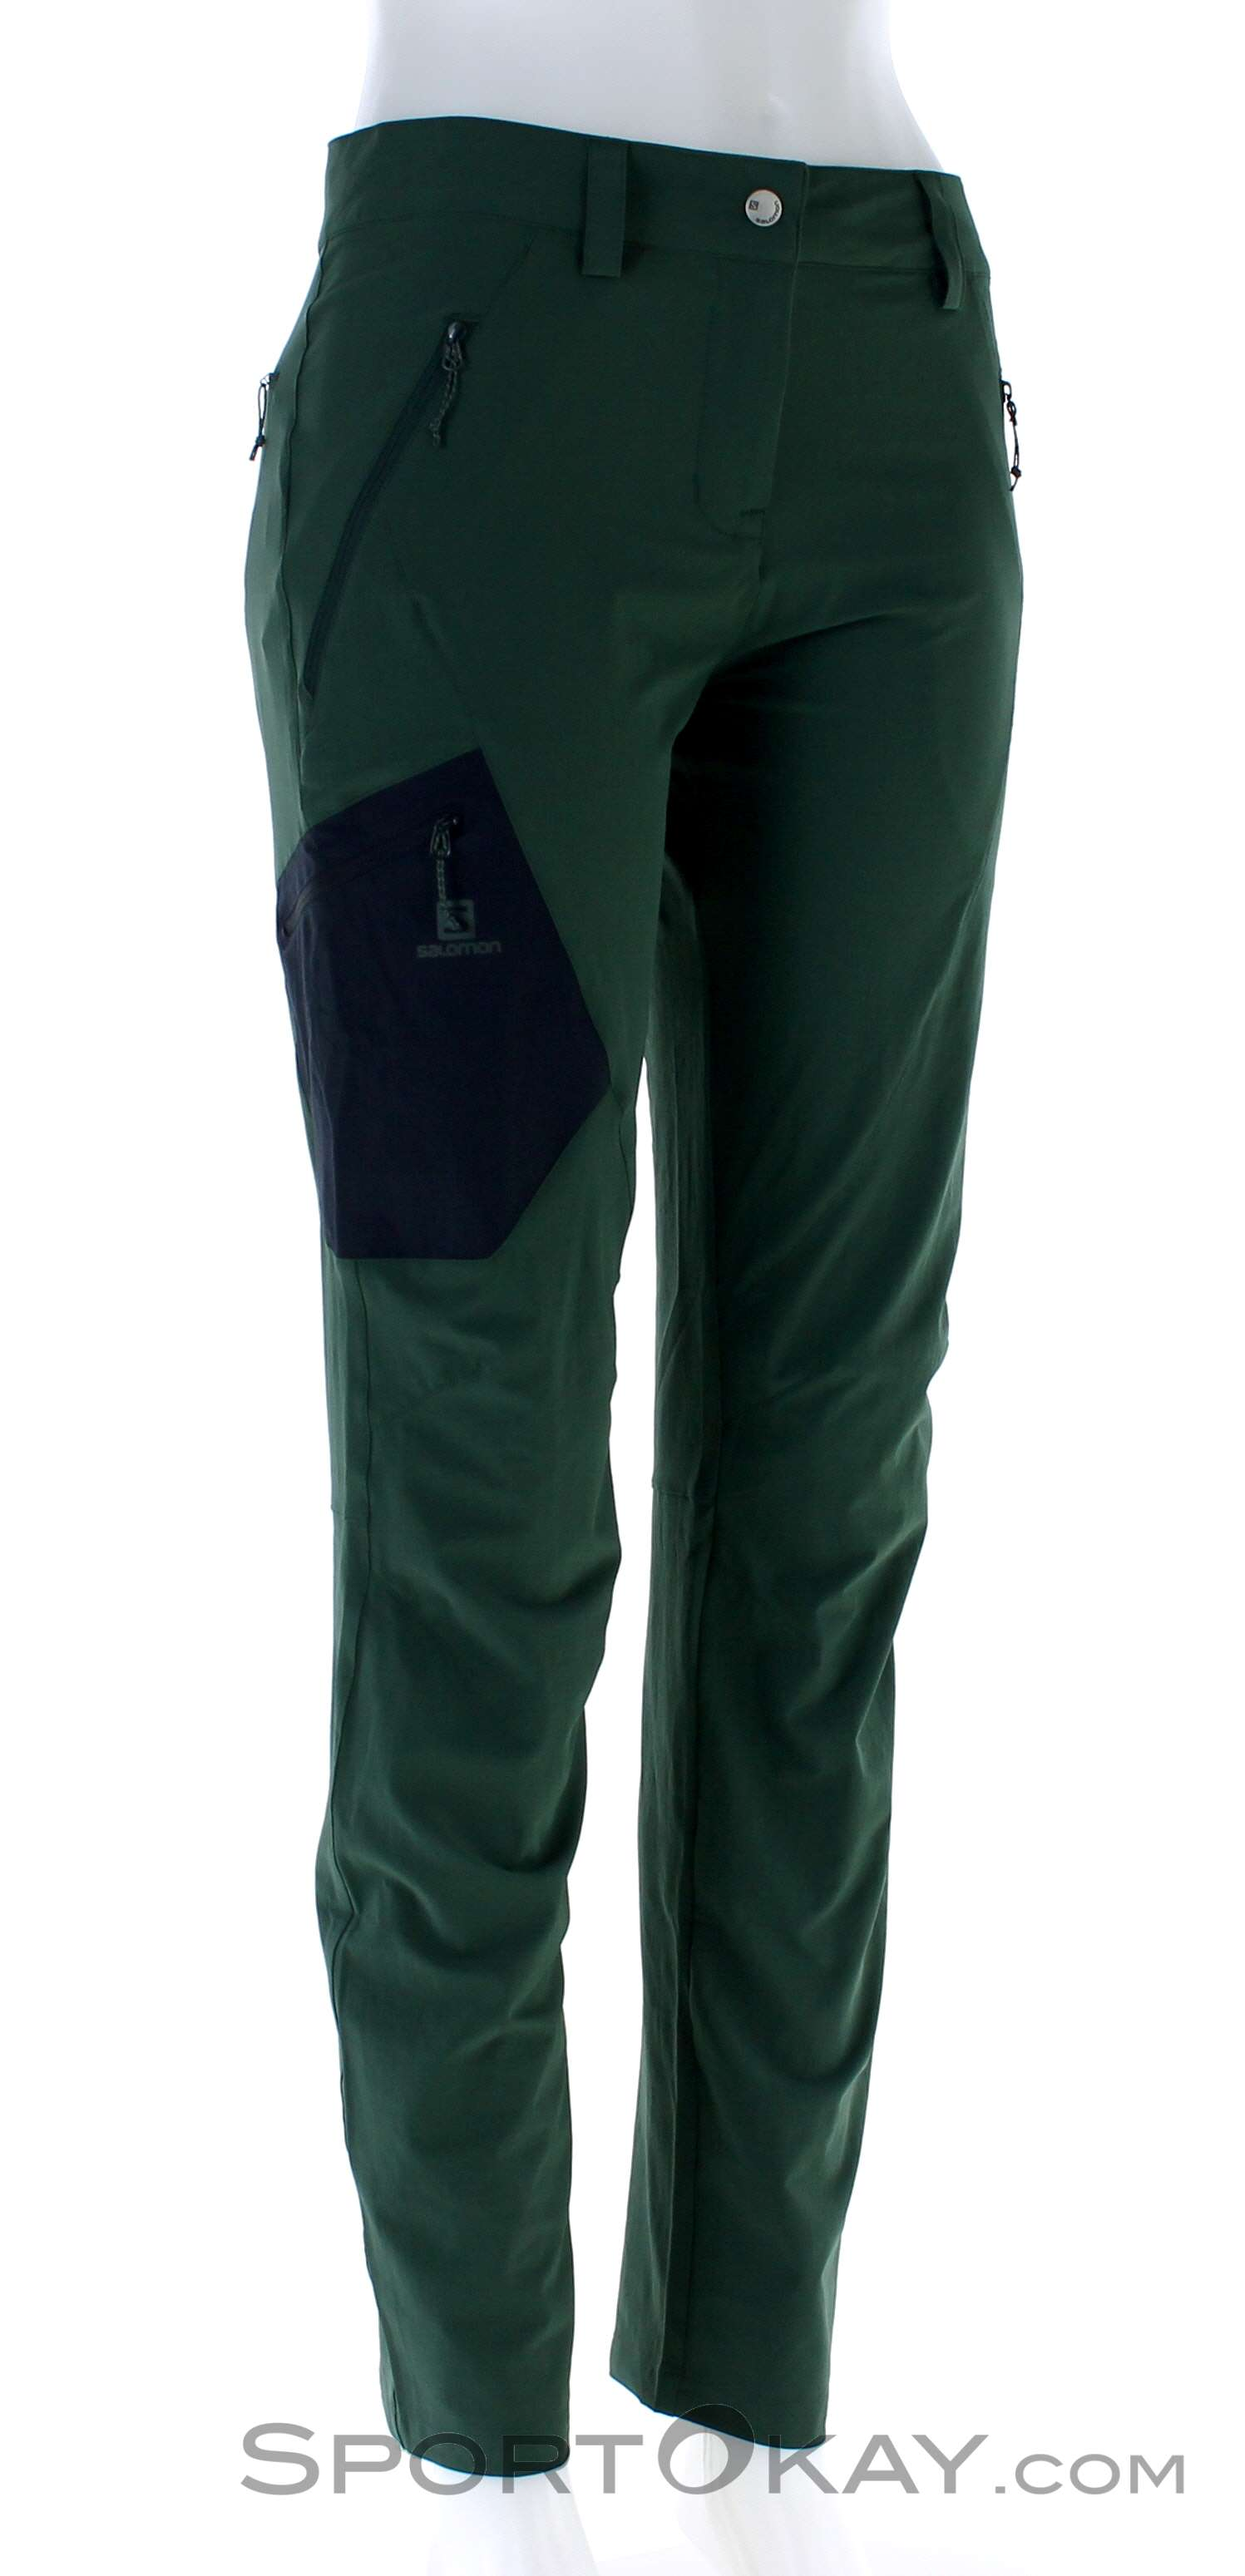 Salomon Wayfarer Tapered Pant Womens Outdoor Pants Pants Outdoor Clothing Outdoor All